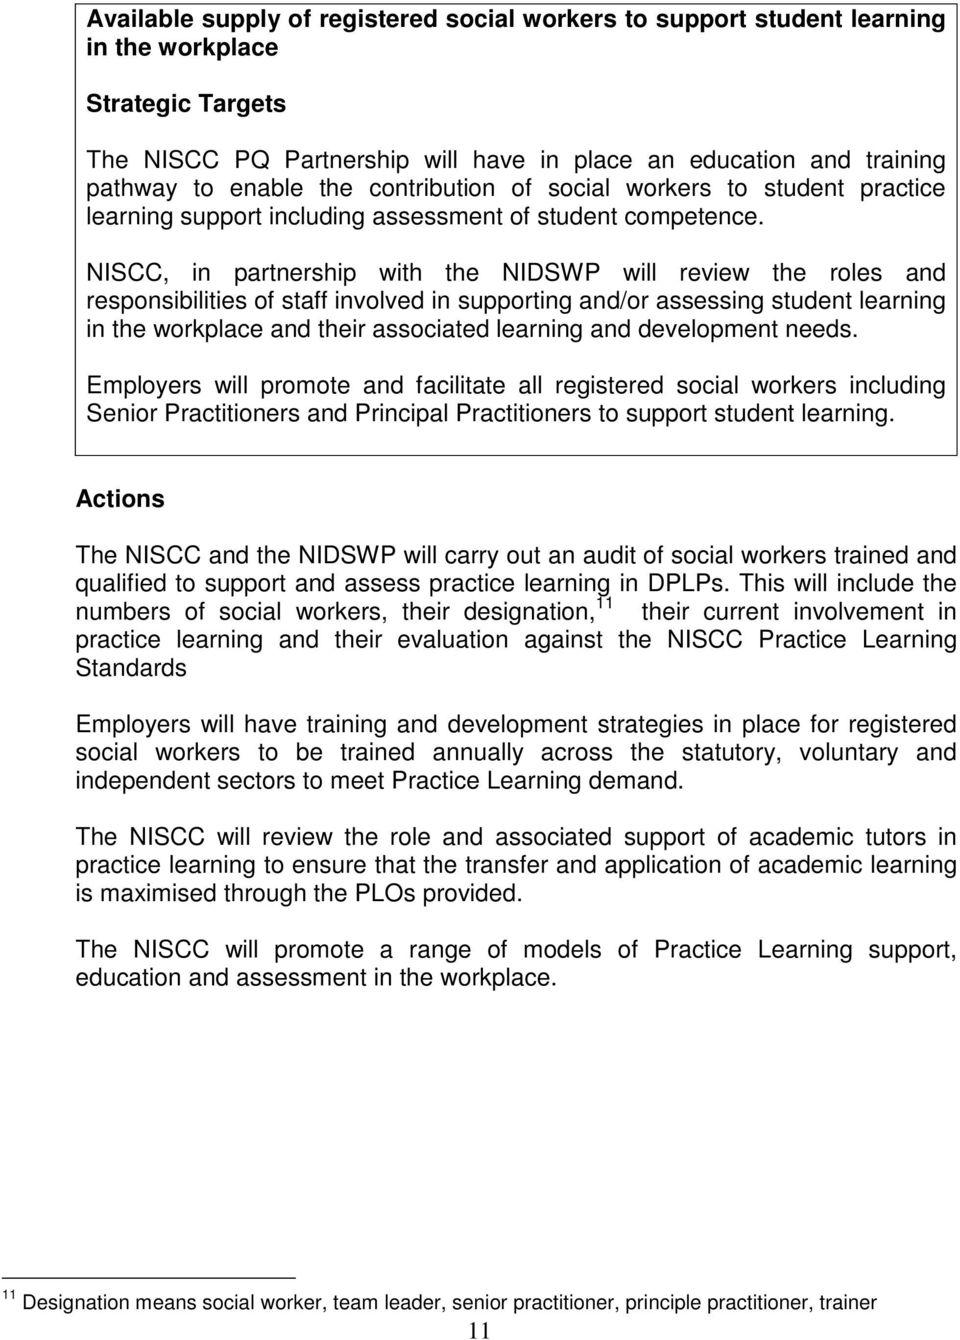 NISCC, in partnership with the NIDSWP will review the roles and responsibilities of staff involved in supporting and/or assessing student learning in the workplace and their associated learning and